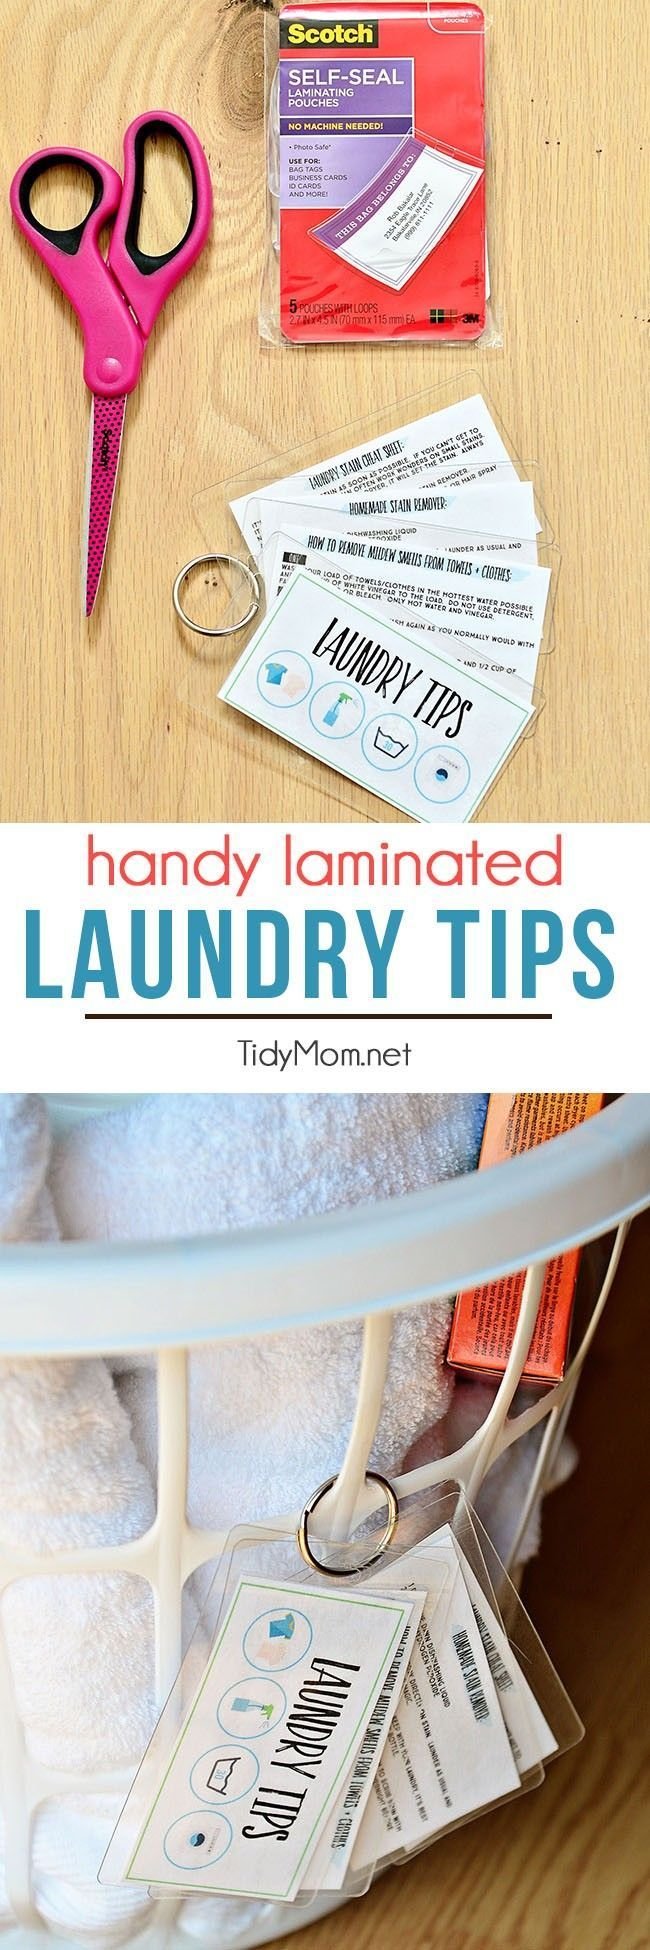 Keep these handy laminated laundry tips at your fingertips. Download and print for free, keep on a ring to hang on basket or on a hook in the laundry room. Use Scotch Self-Seal Laminating pouches and Free printable